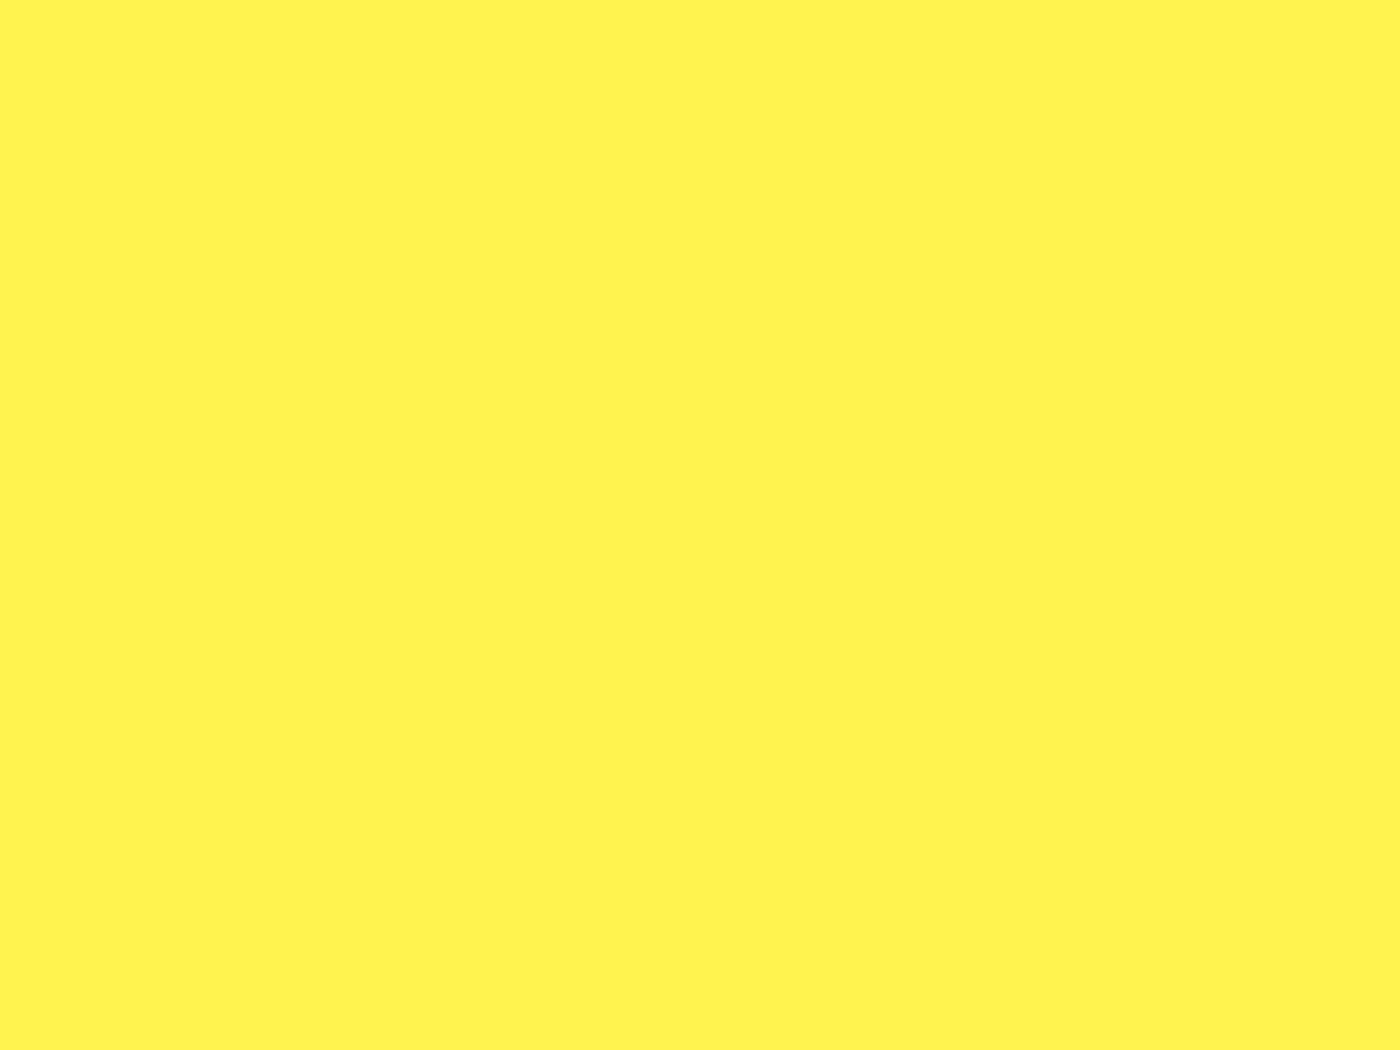 1400x1050 Lemon Yellow Solid Color Background